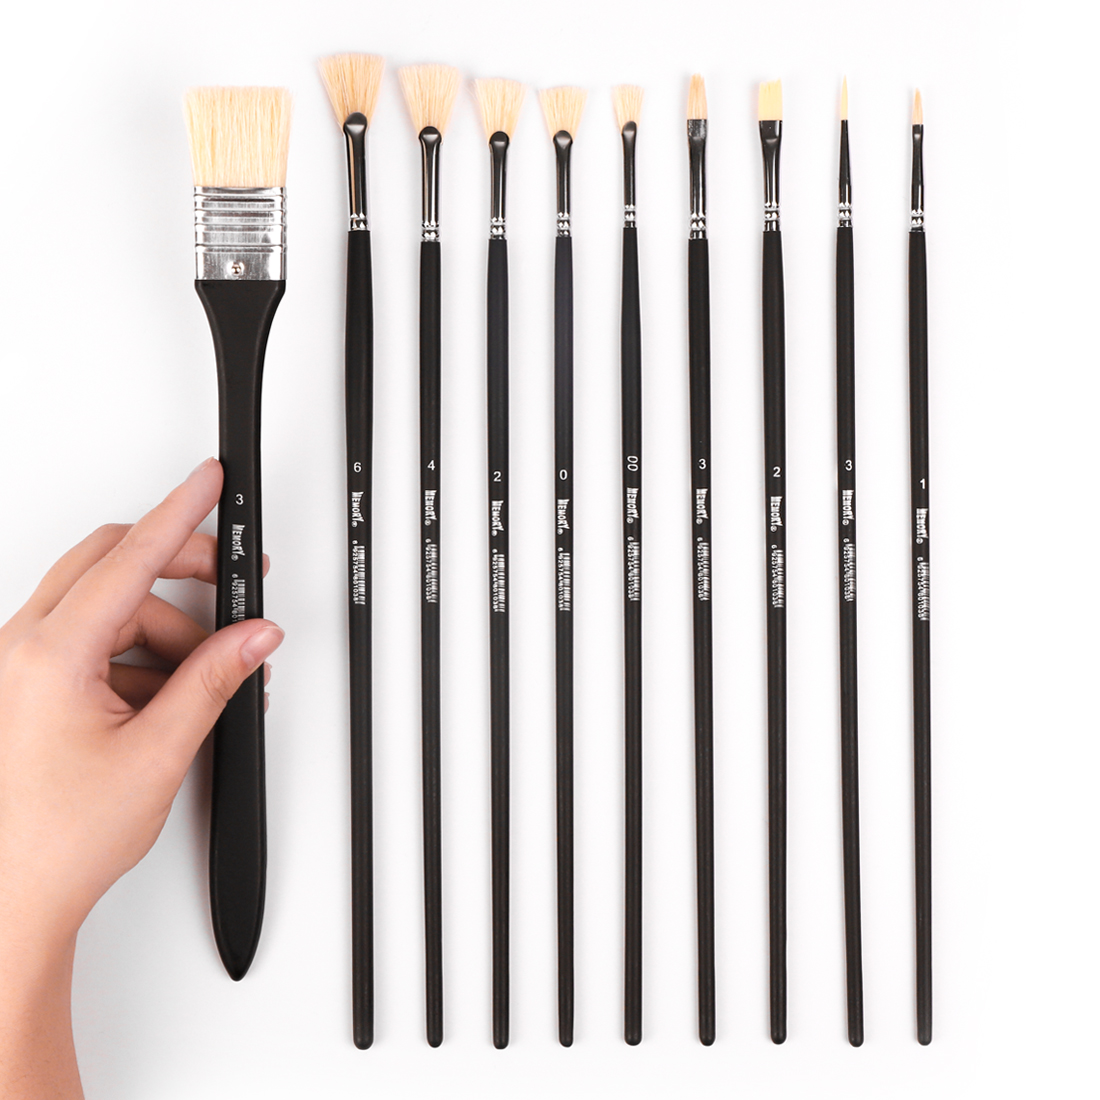 Memory 10Pcs Professional Paint Brushes Set for Drawing Painting Oil Acrylic Watercolor Art Supplies